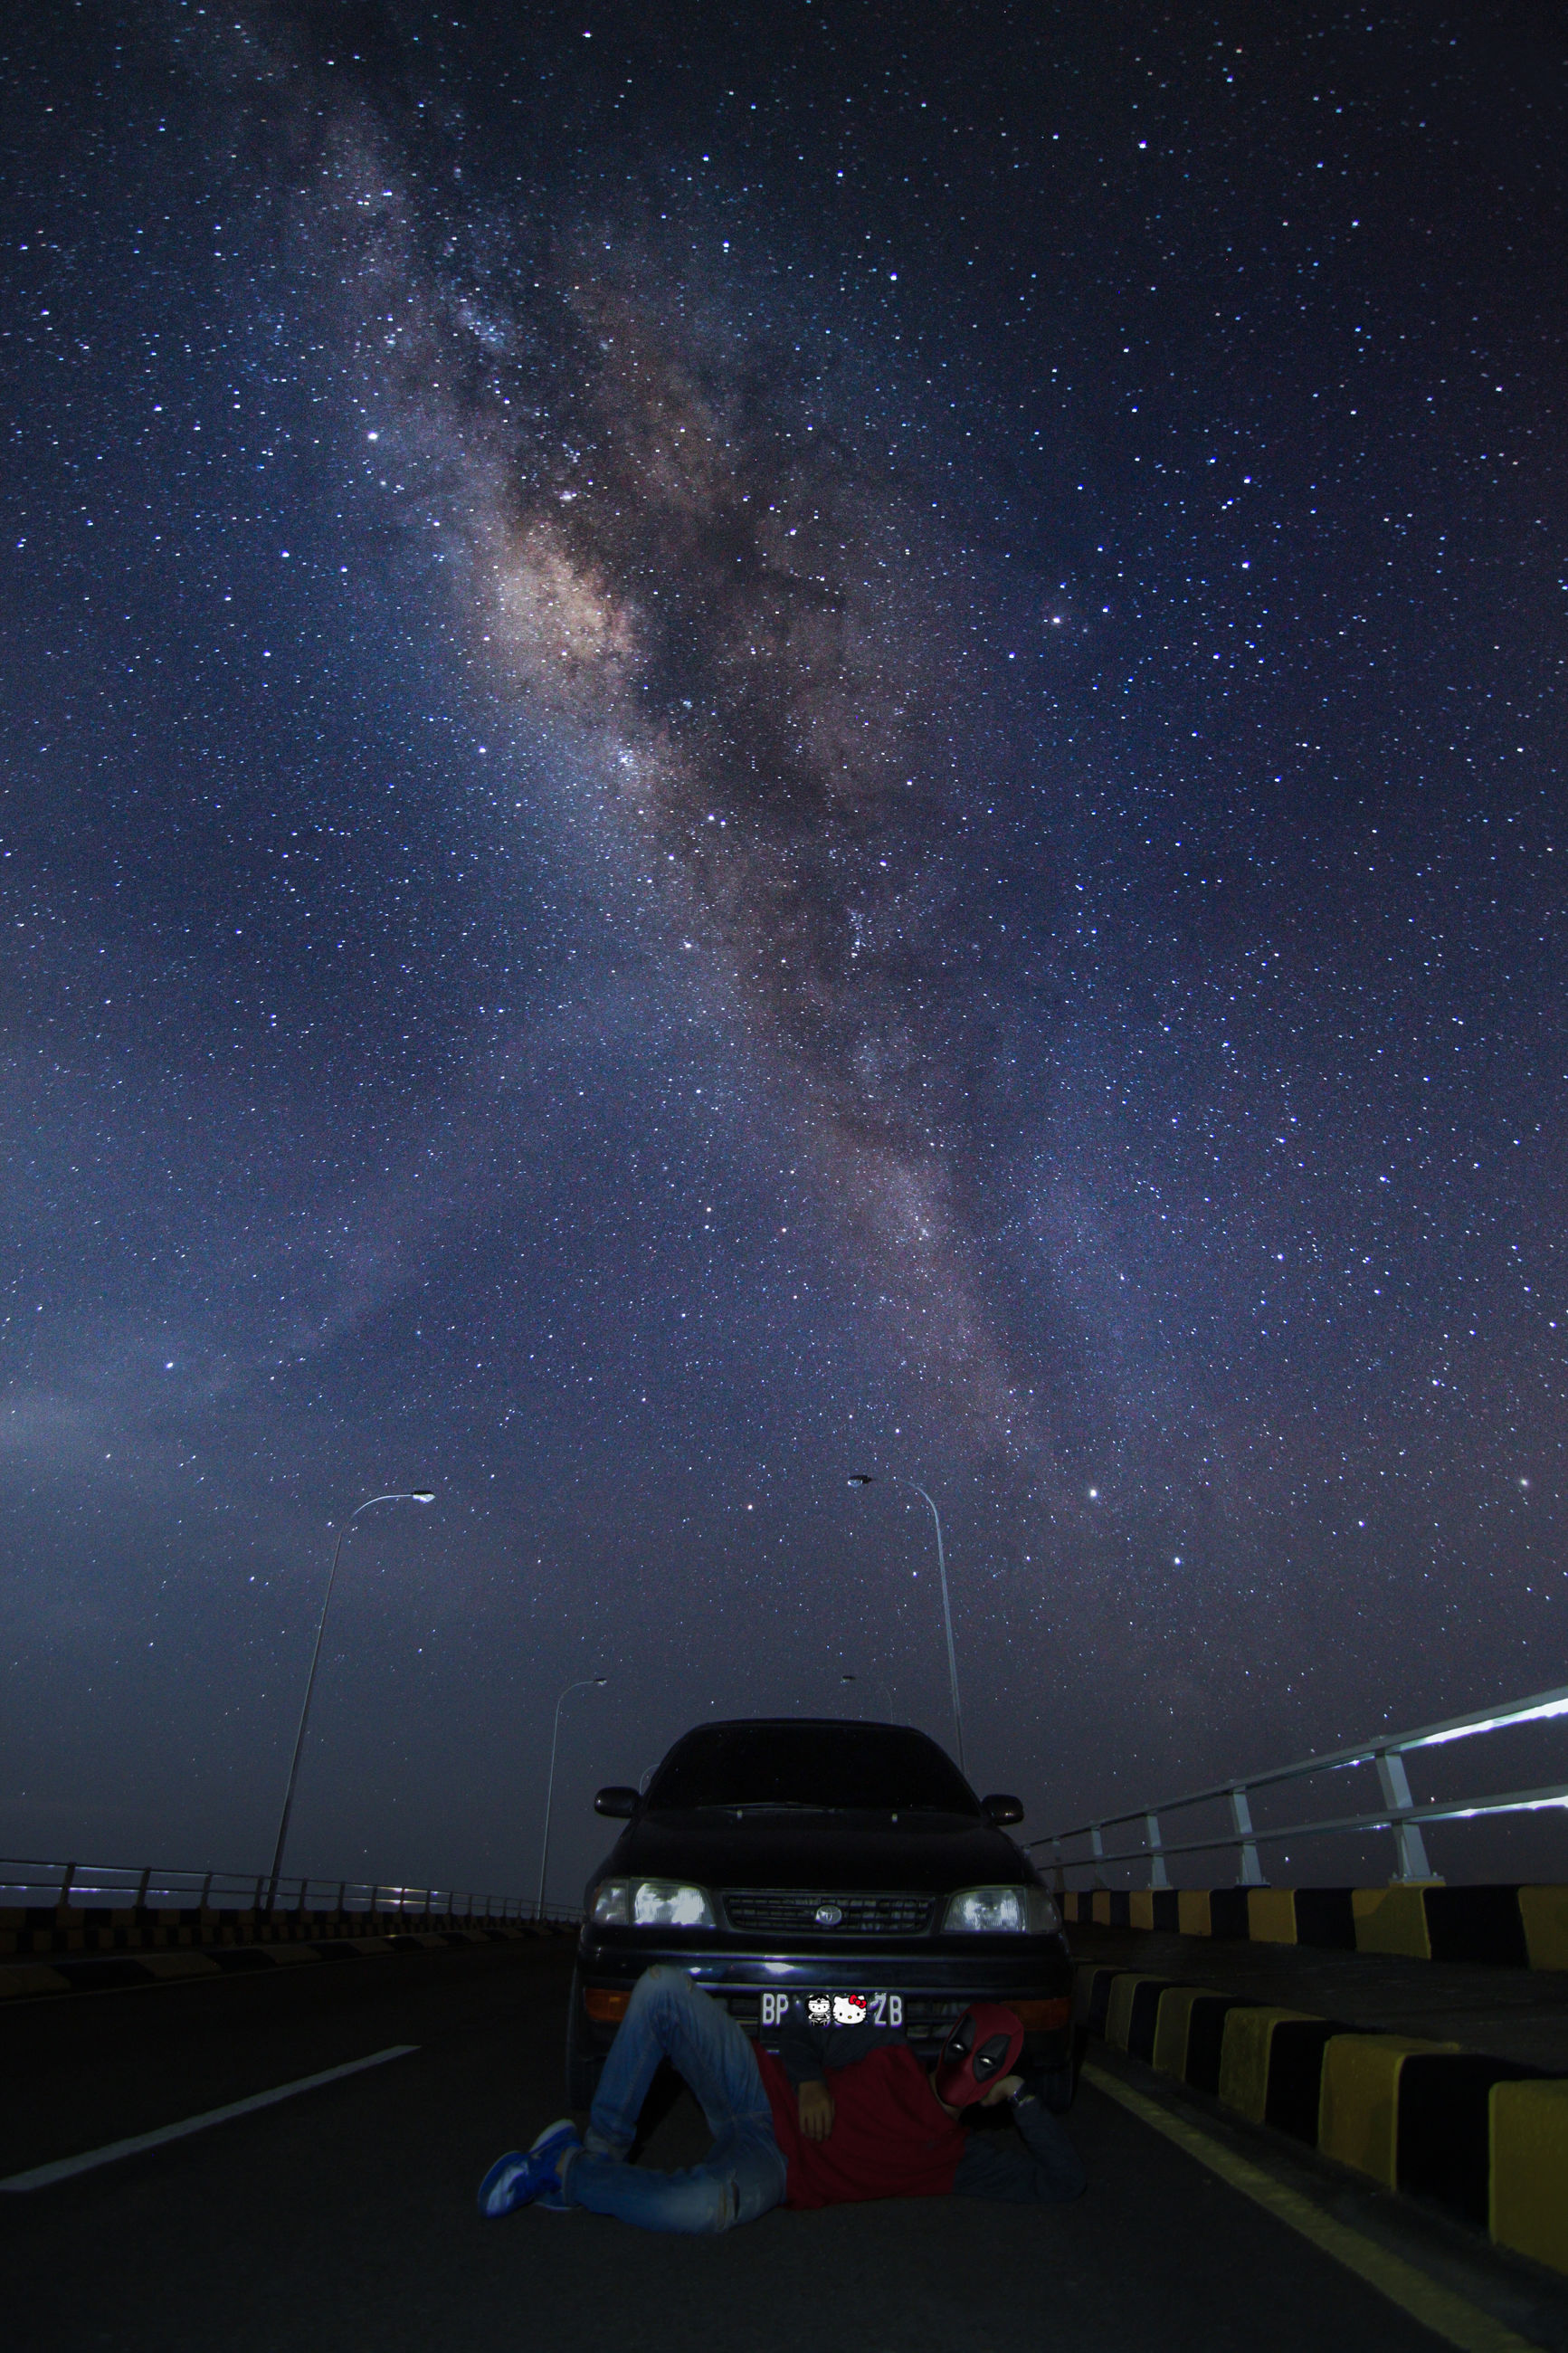 star - space, transportation, night, space, land vehicle, mode of transportation, sky, car, astronomy, star field, motor vehicle, scenics - nature, star, galaxy, nature, road, beauty in nature, one person, infinity, real people, outdoors, milky way